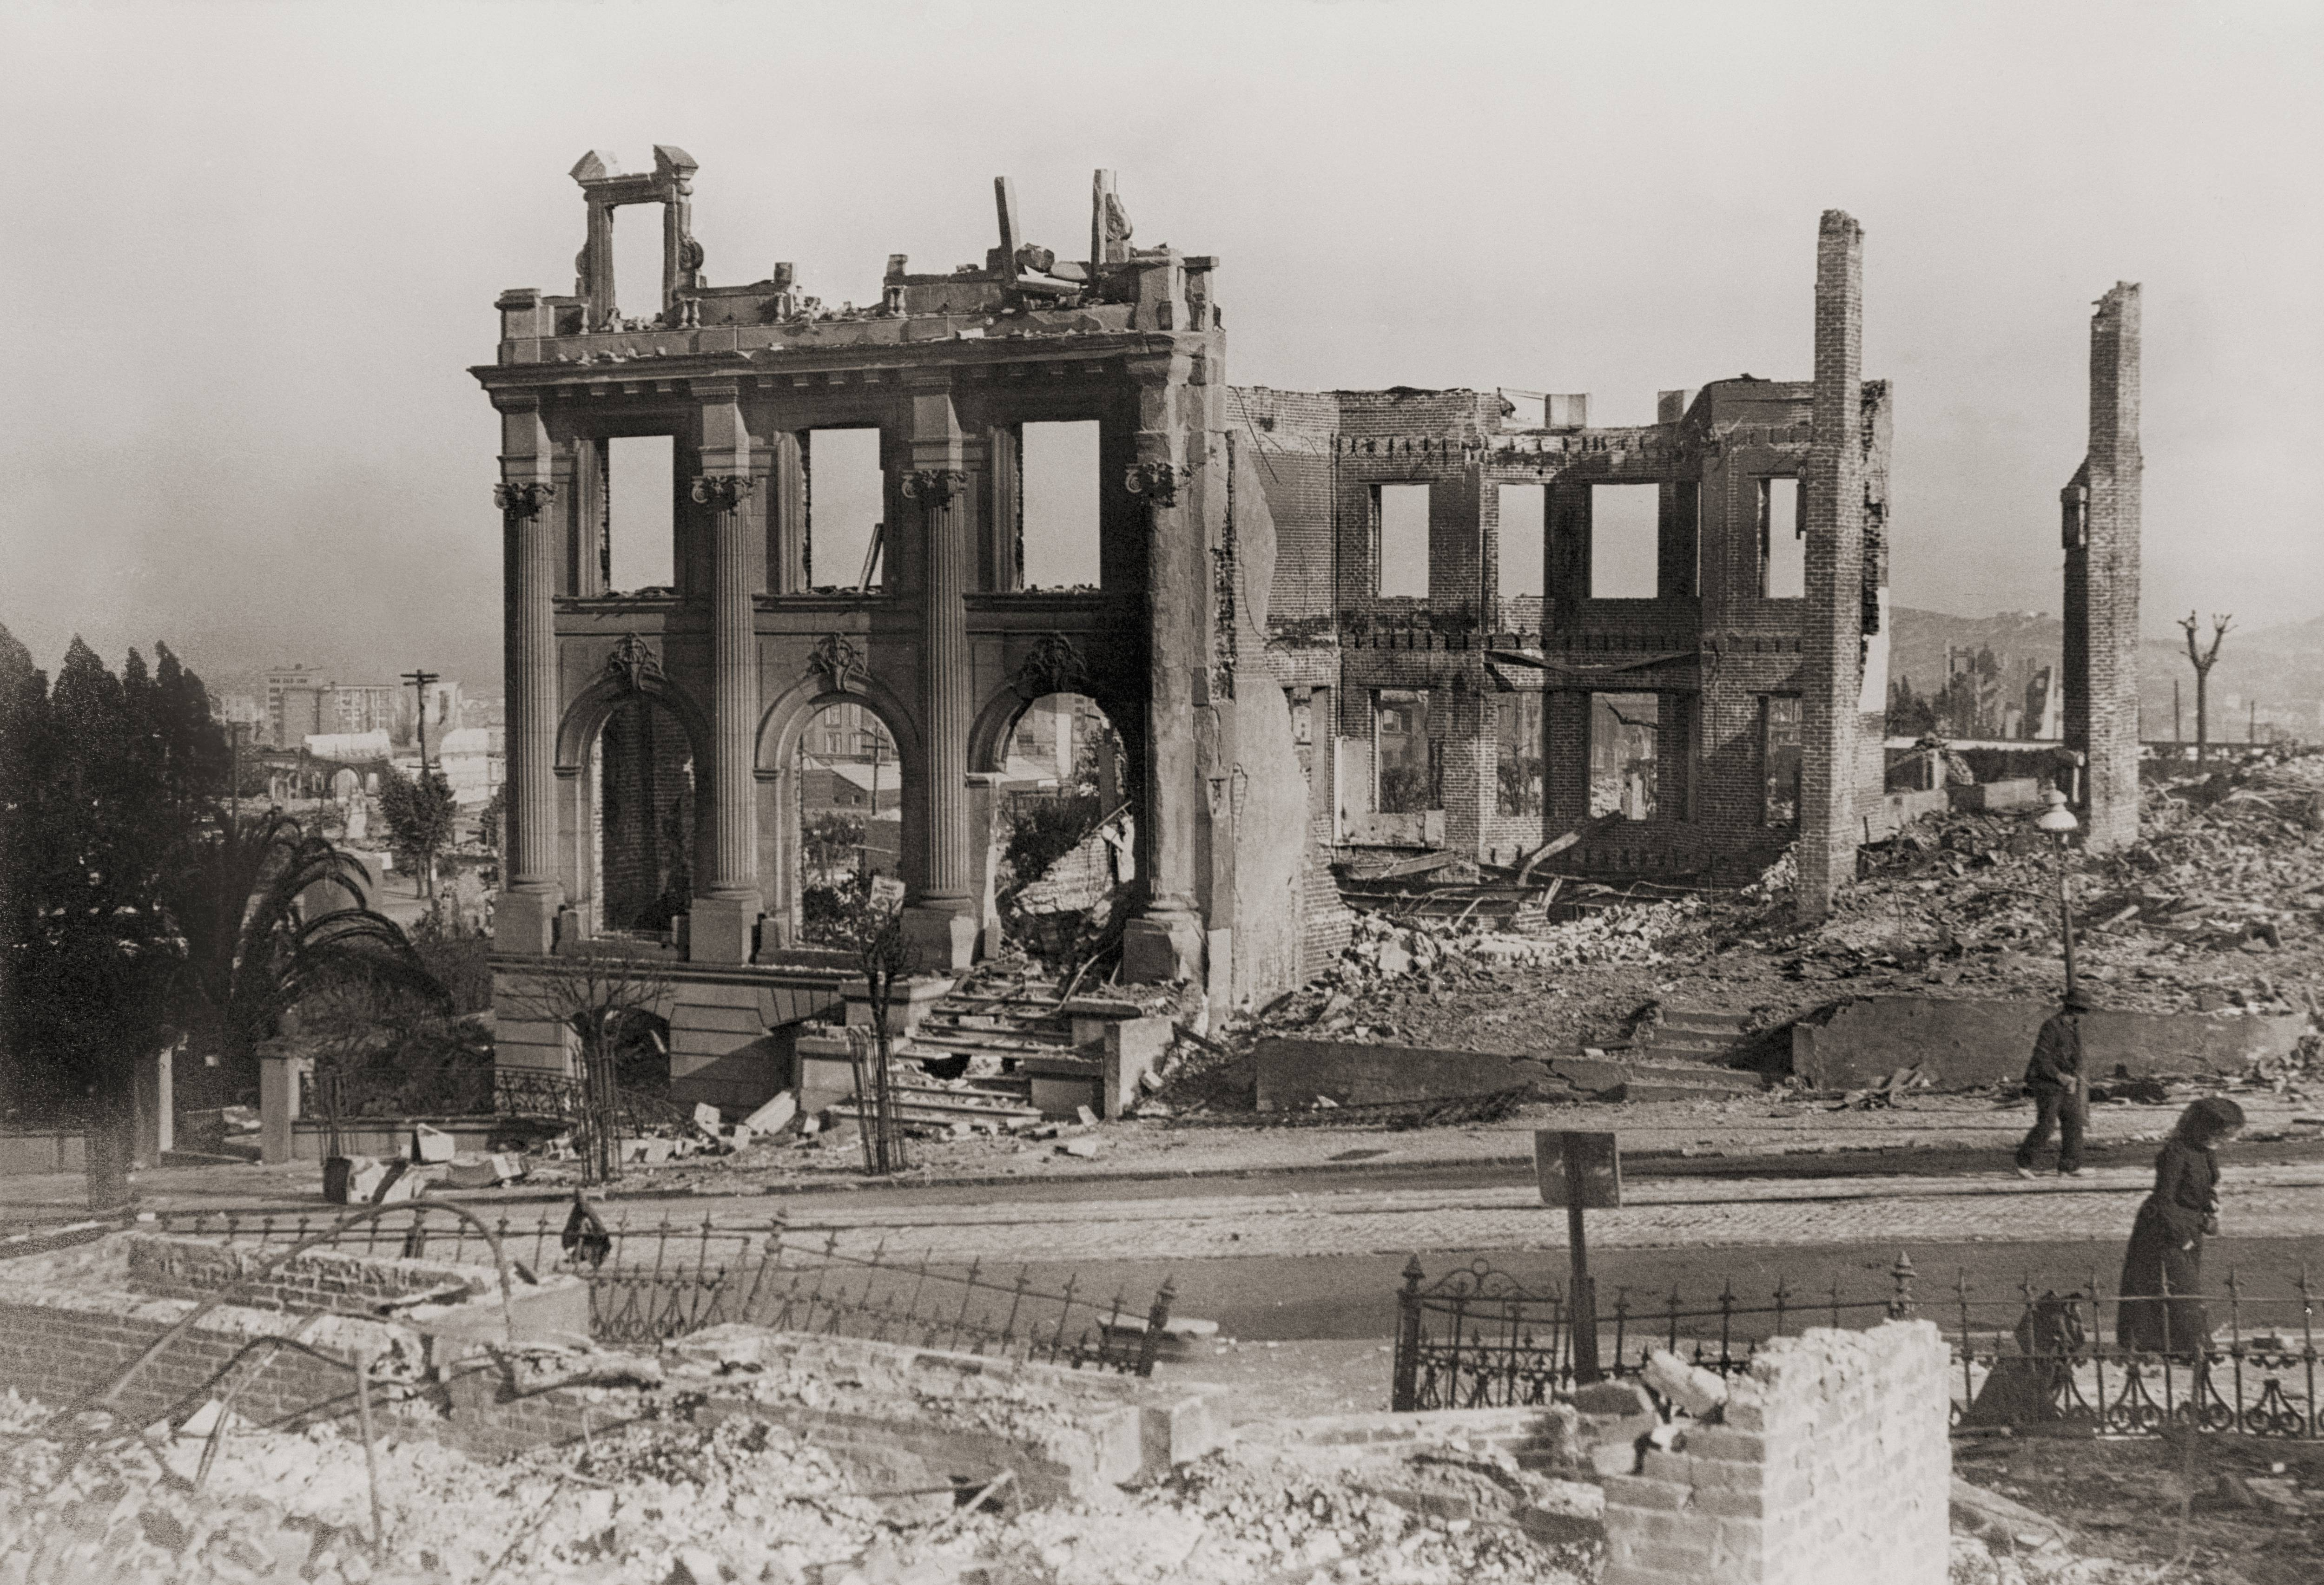 Ruins in San Francisco, California, United States of America, after the earthquake of April 18, 1906